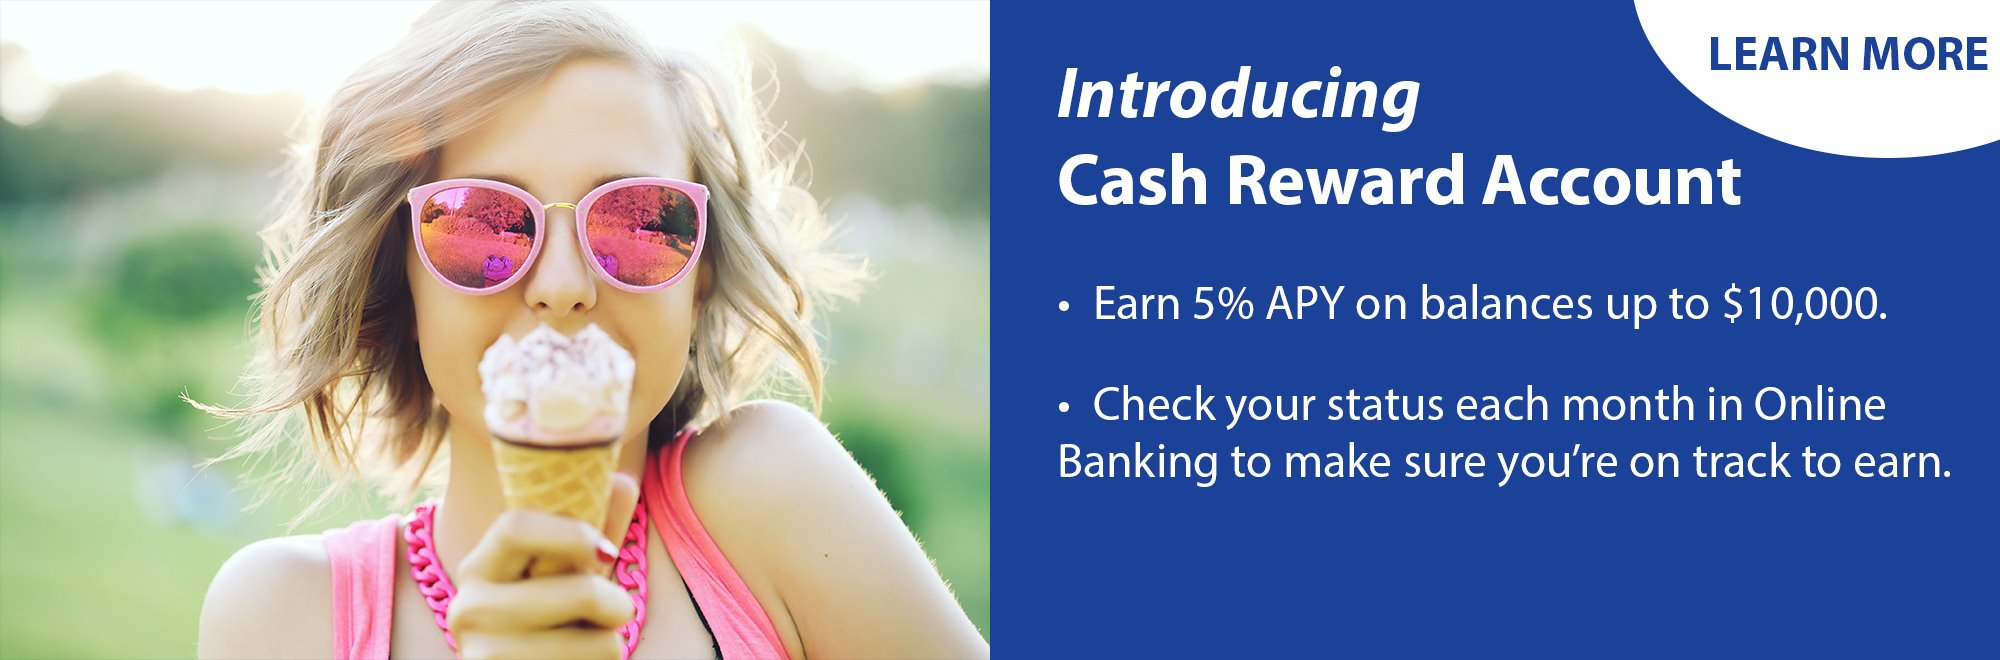 Earn 5% APY on balances up to $10,000 with a Cash Reward Account